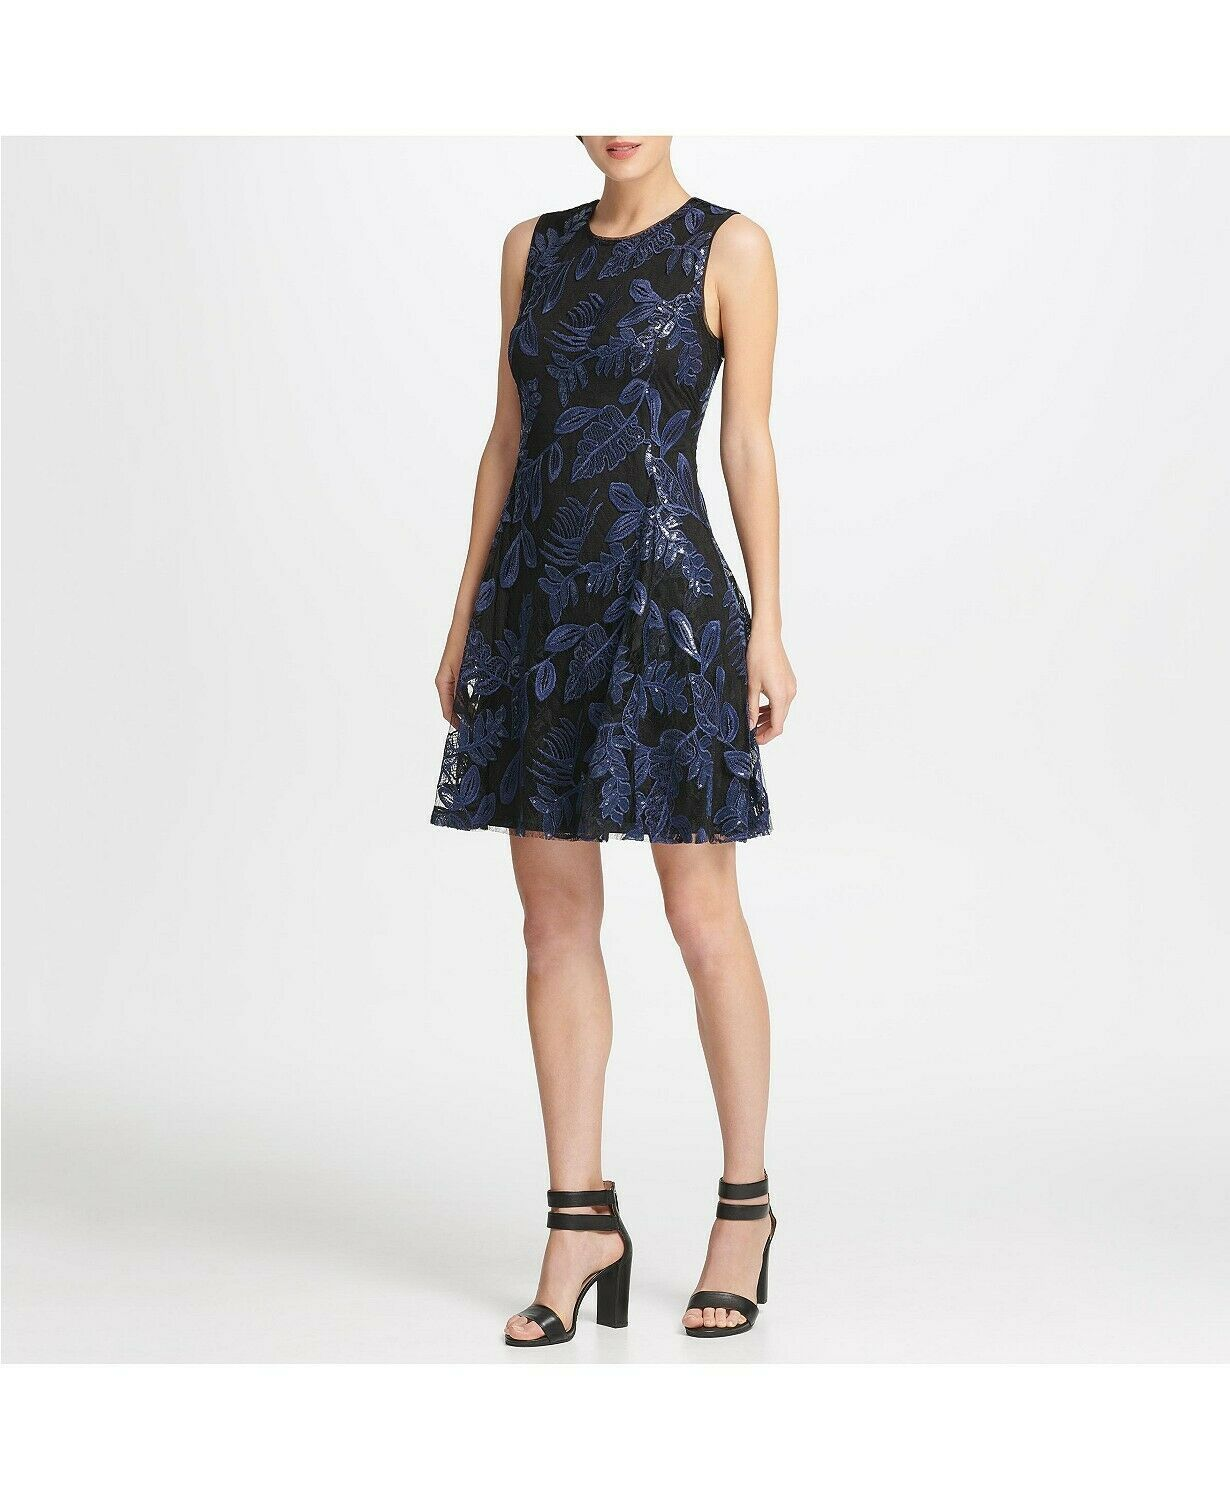 Primary image for DKNY Sequin Mesh Fit Flare Dress Black/Blueberry Size 2 $159